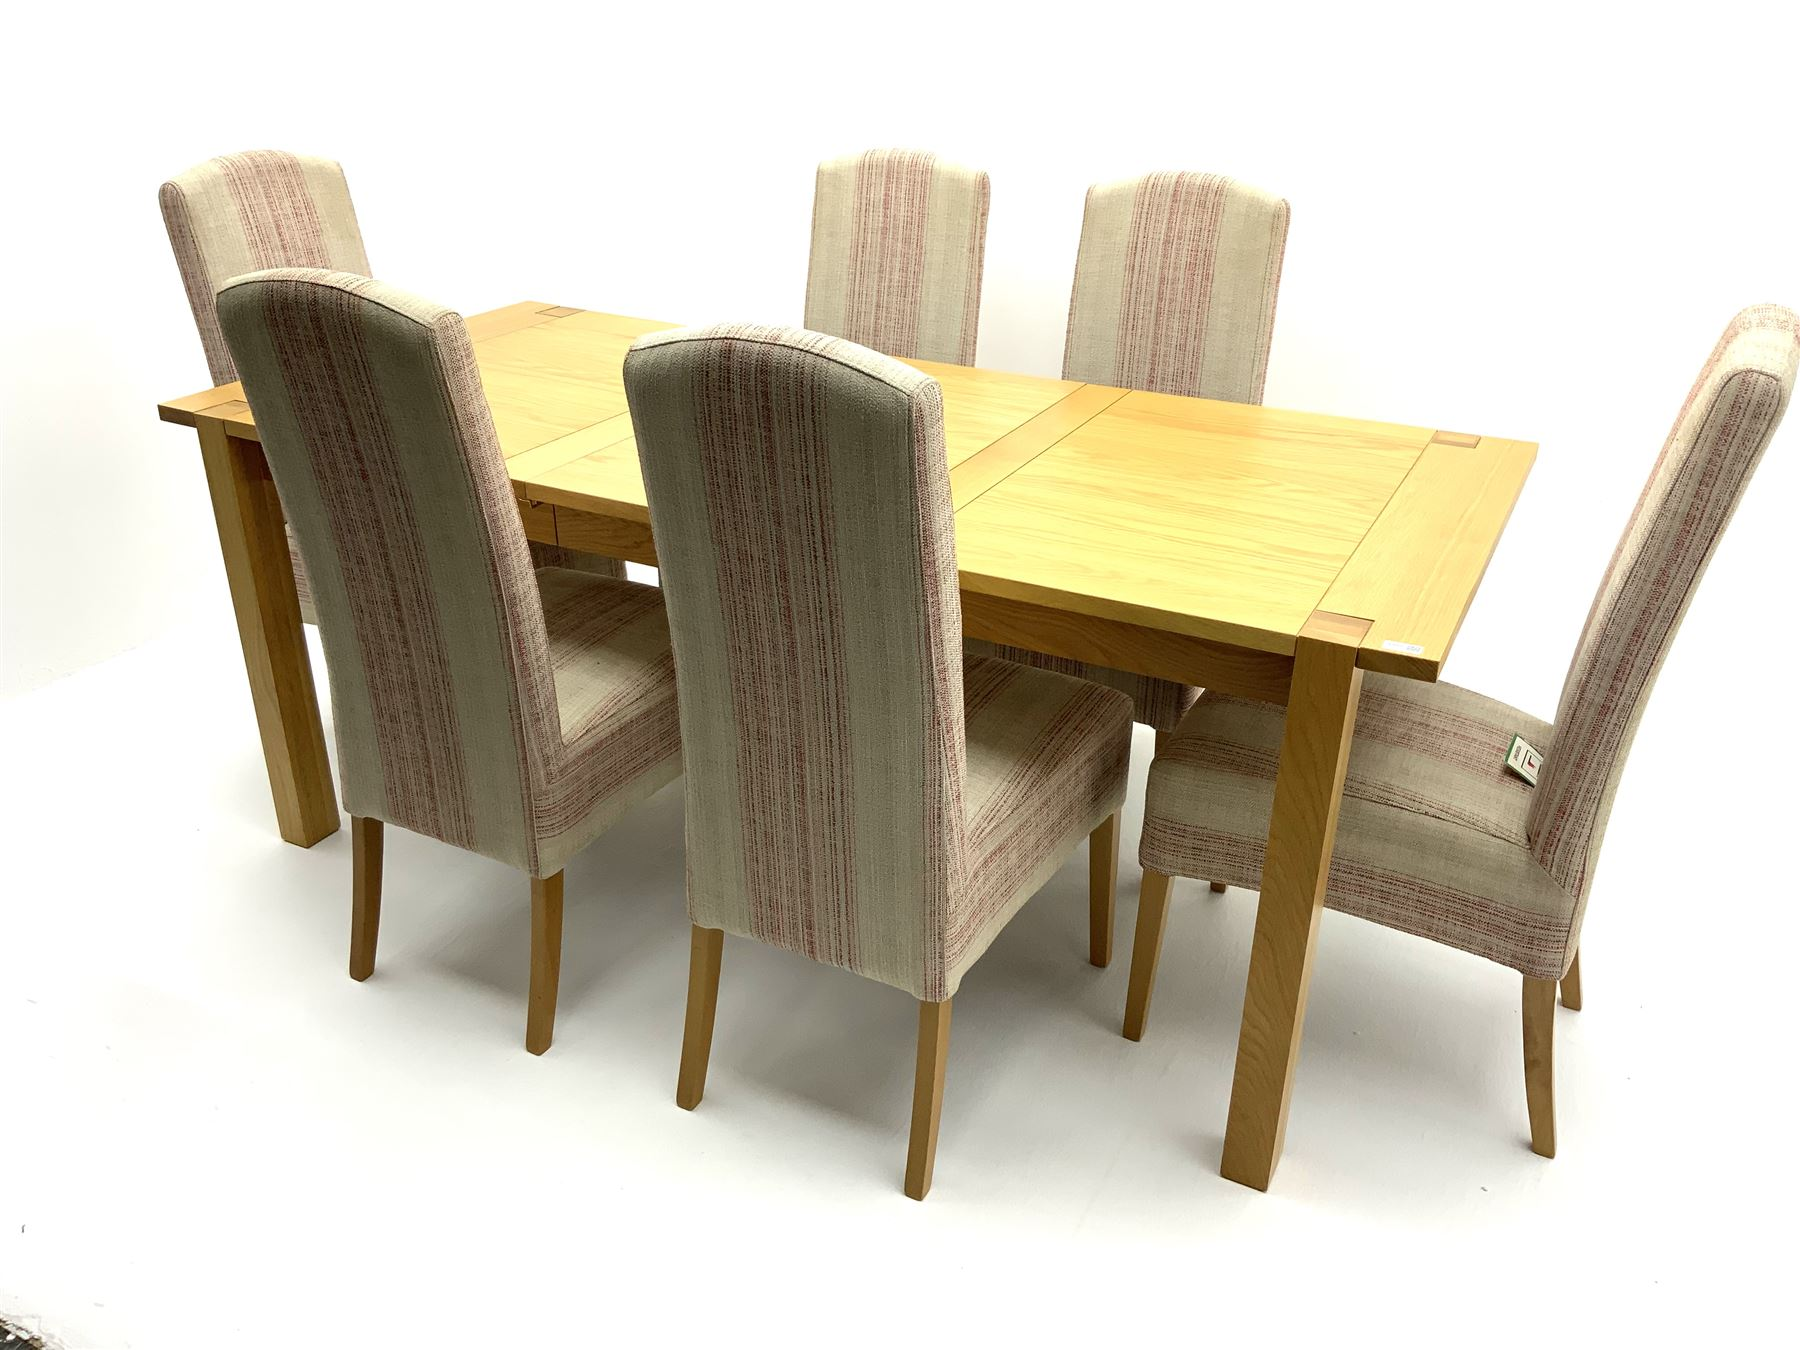 Marks & Spencer Home Sonama light oak extending dining table with leaf and six high back chairs with